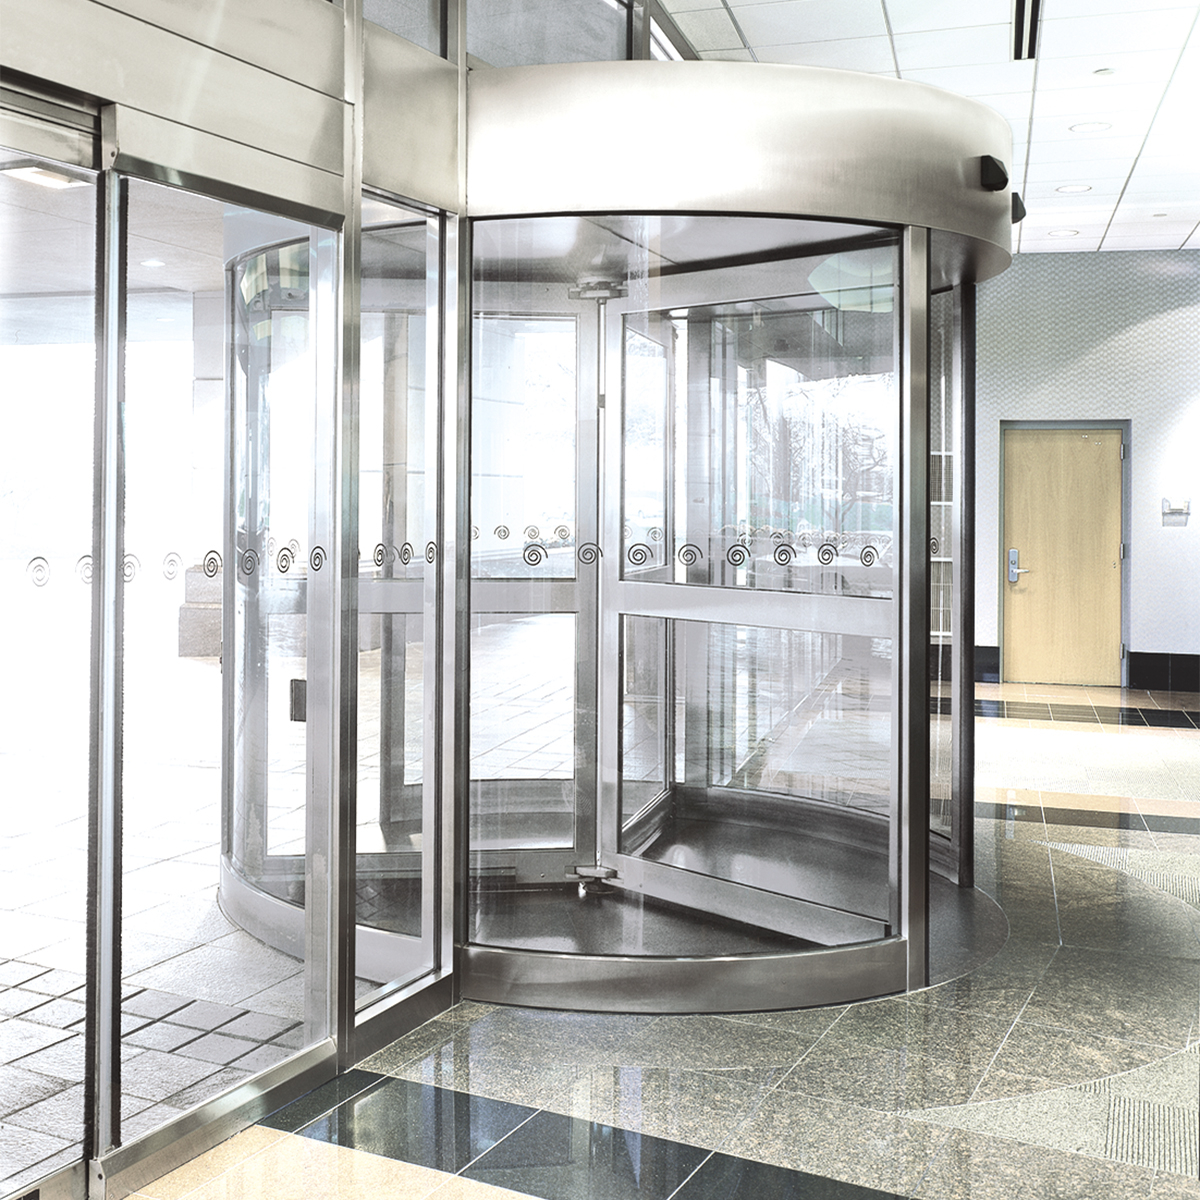 revolving door  sc 1 st  I Miss You When I Blink & To the Guy Who Catapulted Me From a Revolving Door \u2013 I Miss You ...